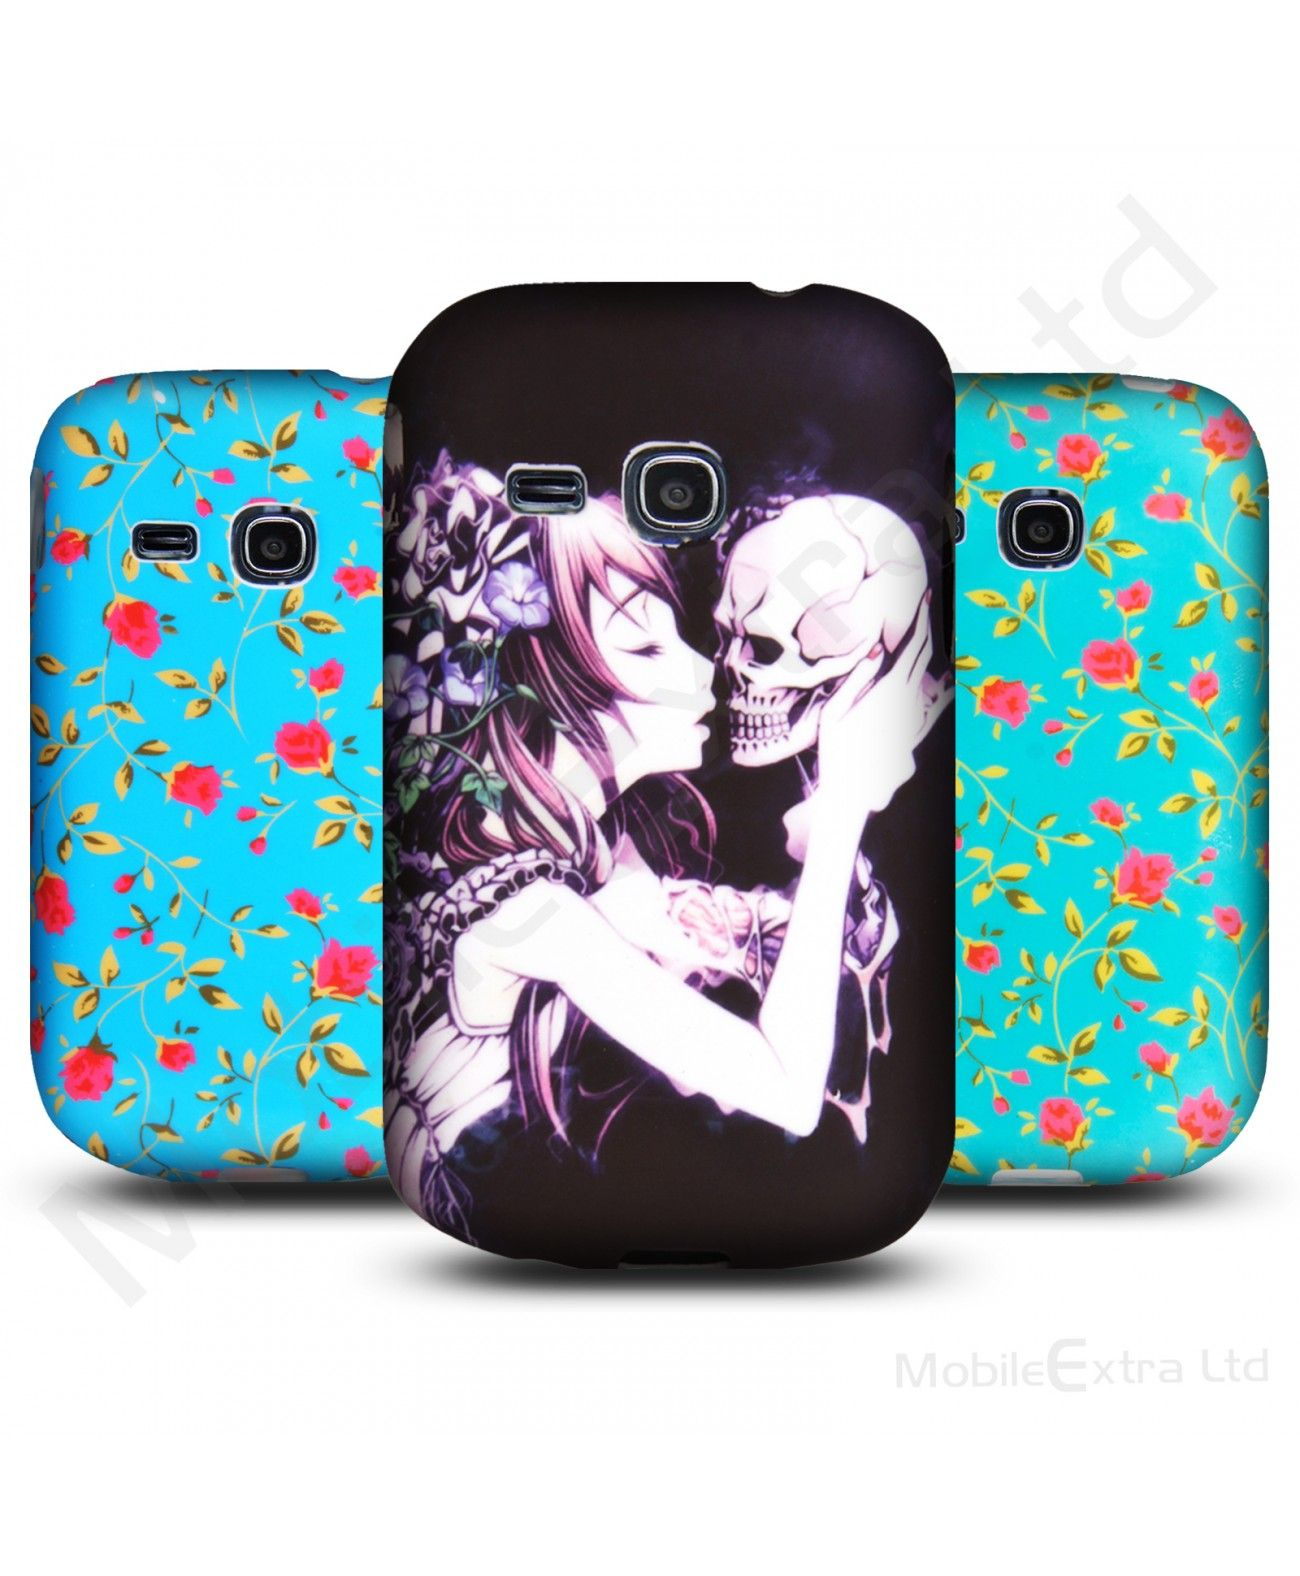 For Samsung Galaxy Young S6310 New Printed Pictorial Soft Silicone Gel Back Skin Case Cover Pouch